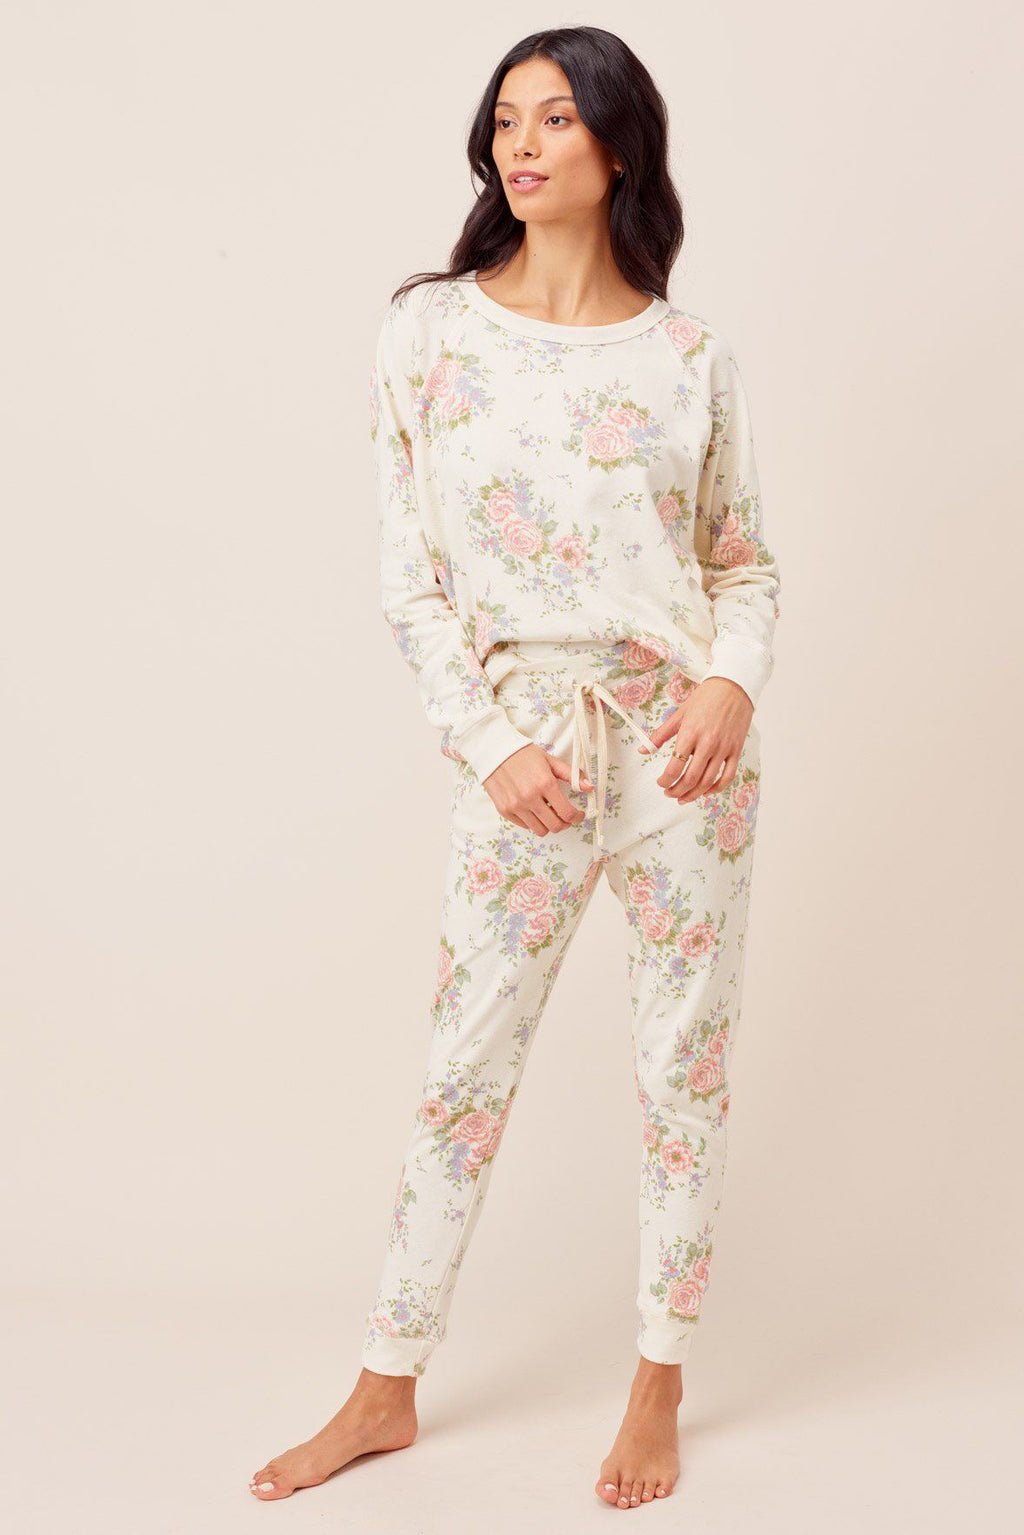 Floral Flat Pocket Sweatpants - honey